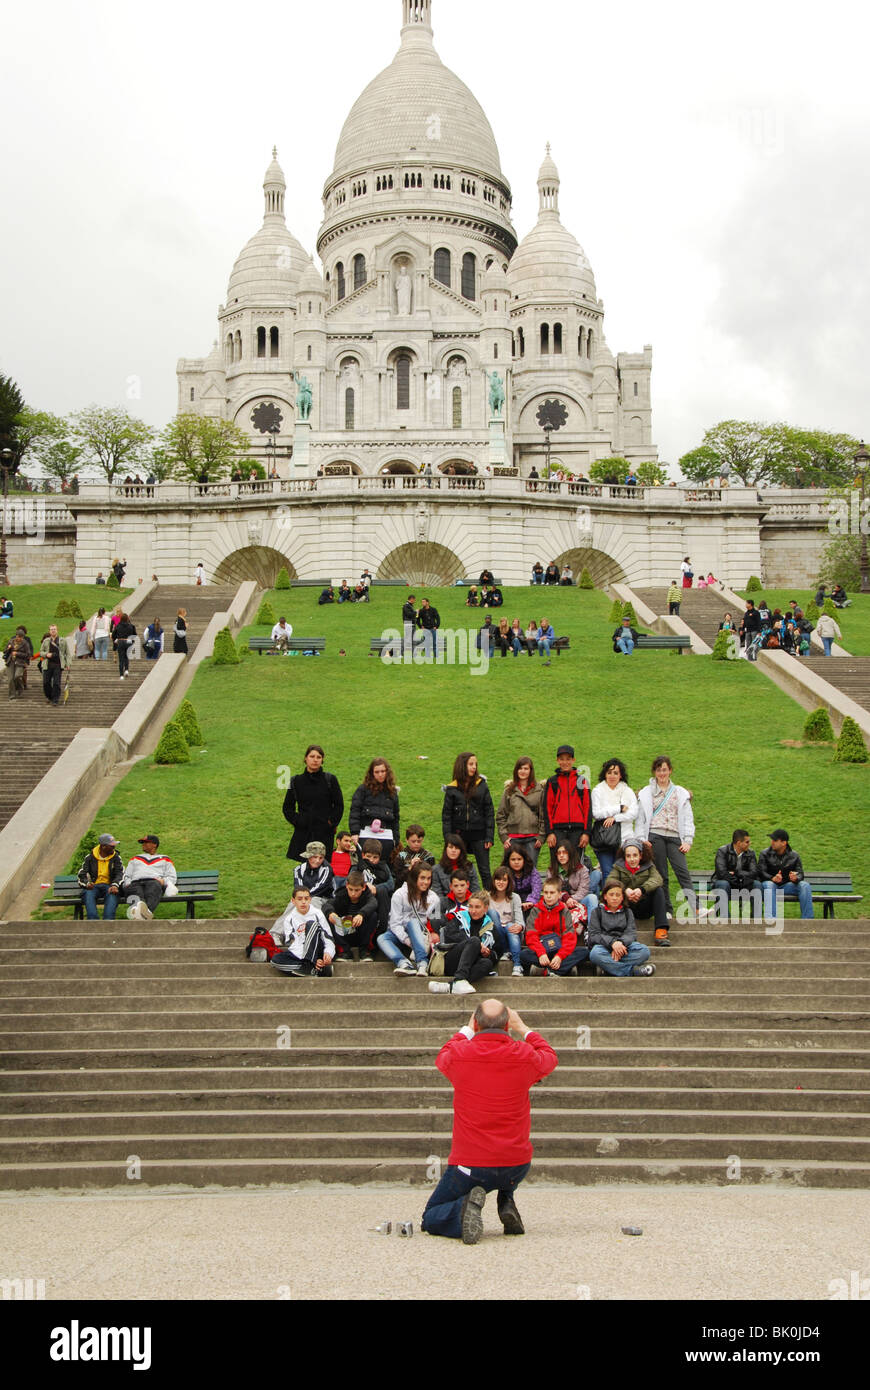 School group of teenagers posing for group shot in front of Sacre Coeur Paris - Stock Image